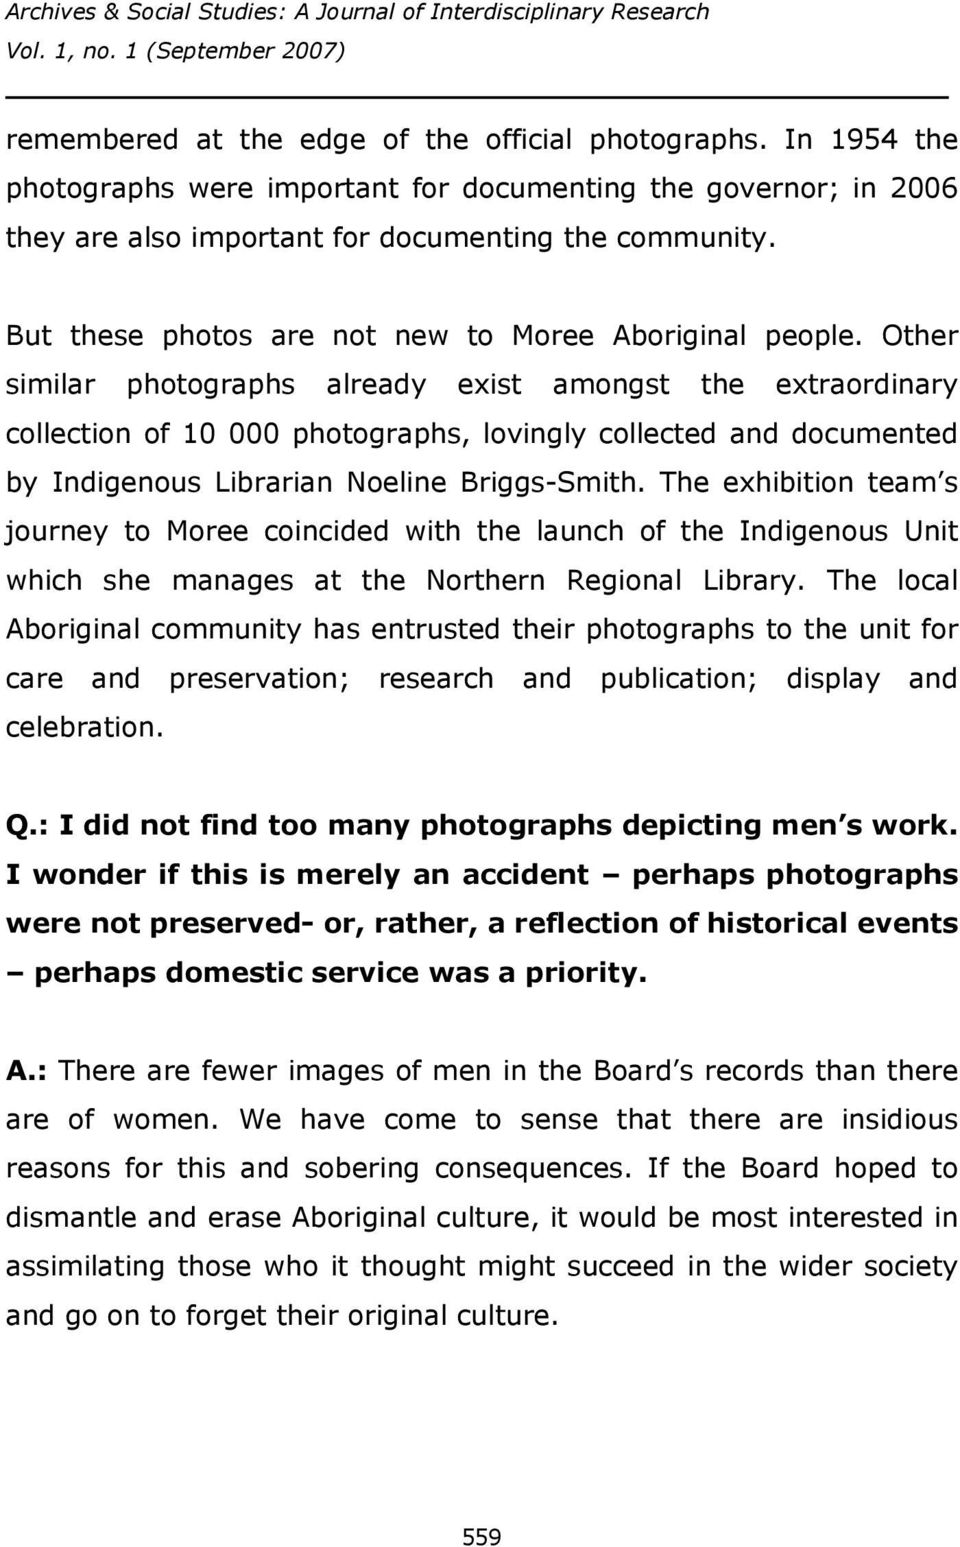 Other similar photographs already exist amongst the extraordinary collection of 10 000 photographs, lovingly collected and documented by Indigenous Librarian Noeline Briggs-Smith.